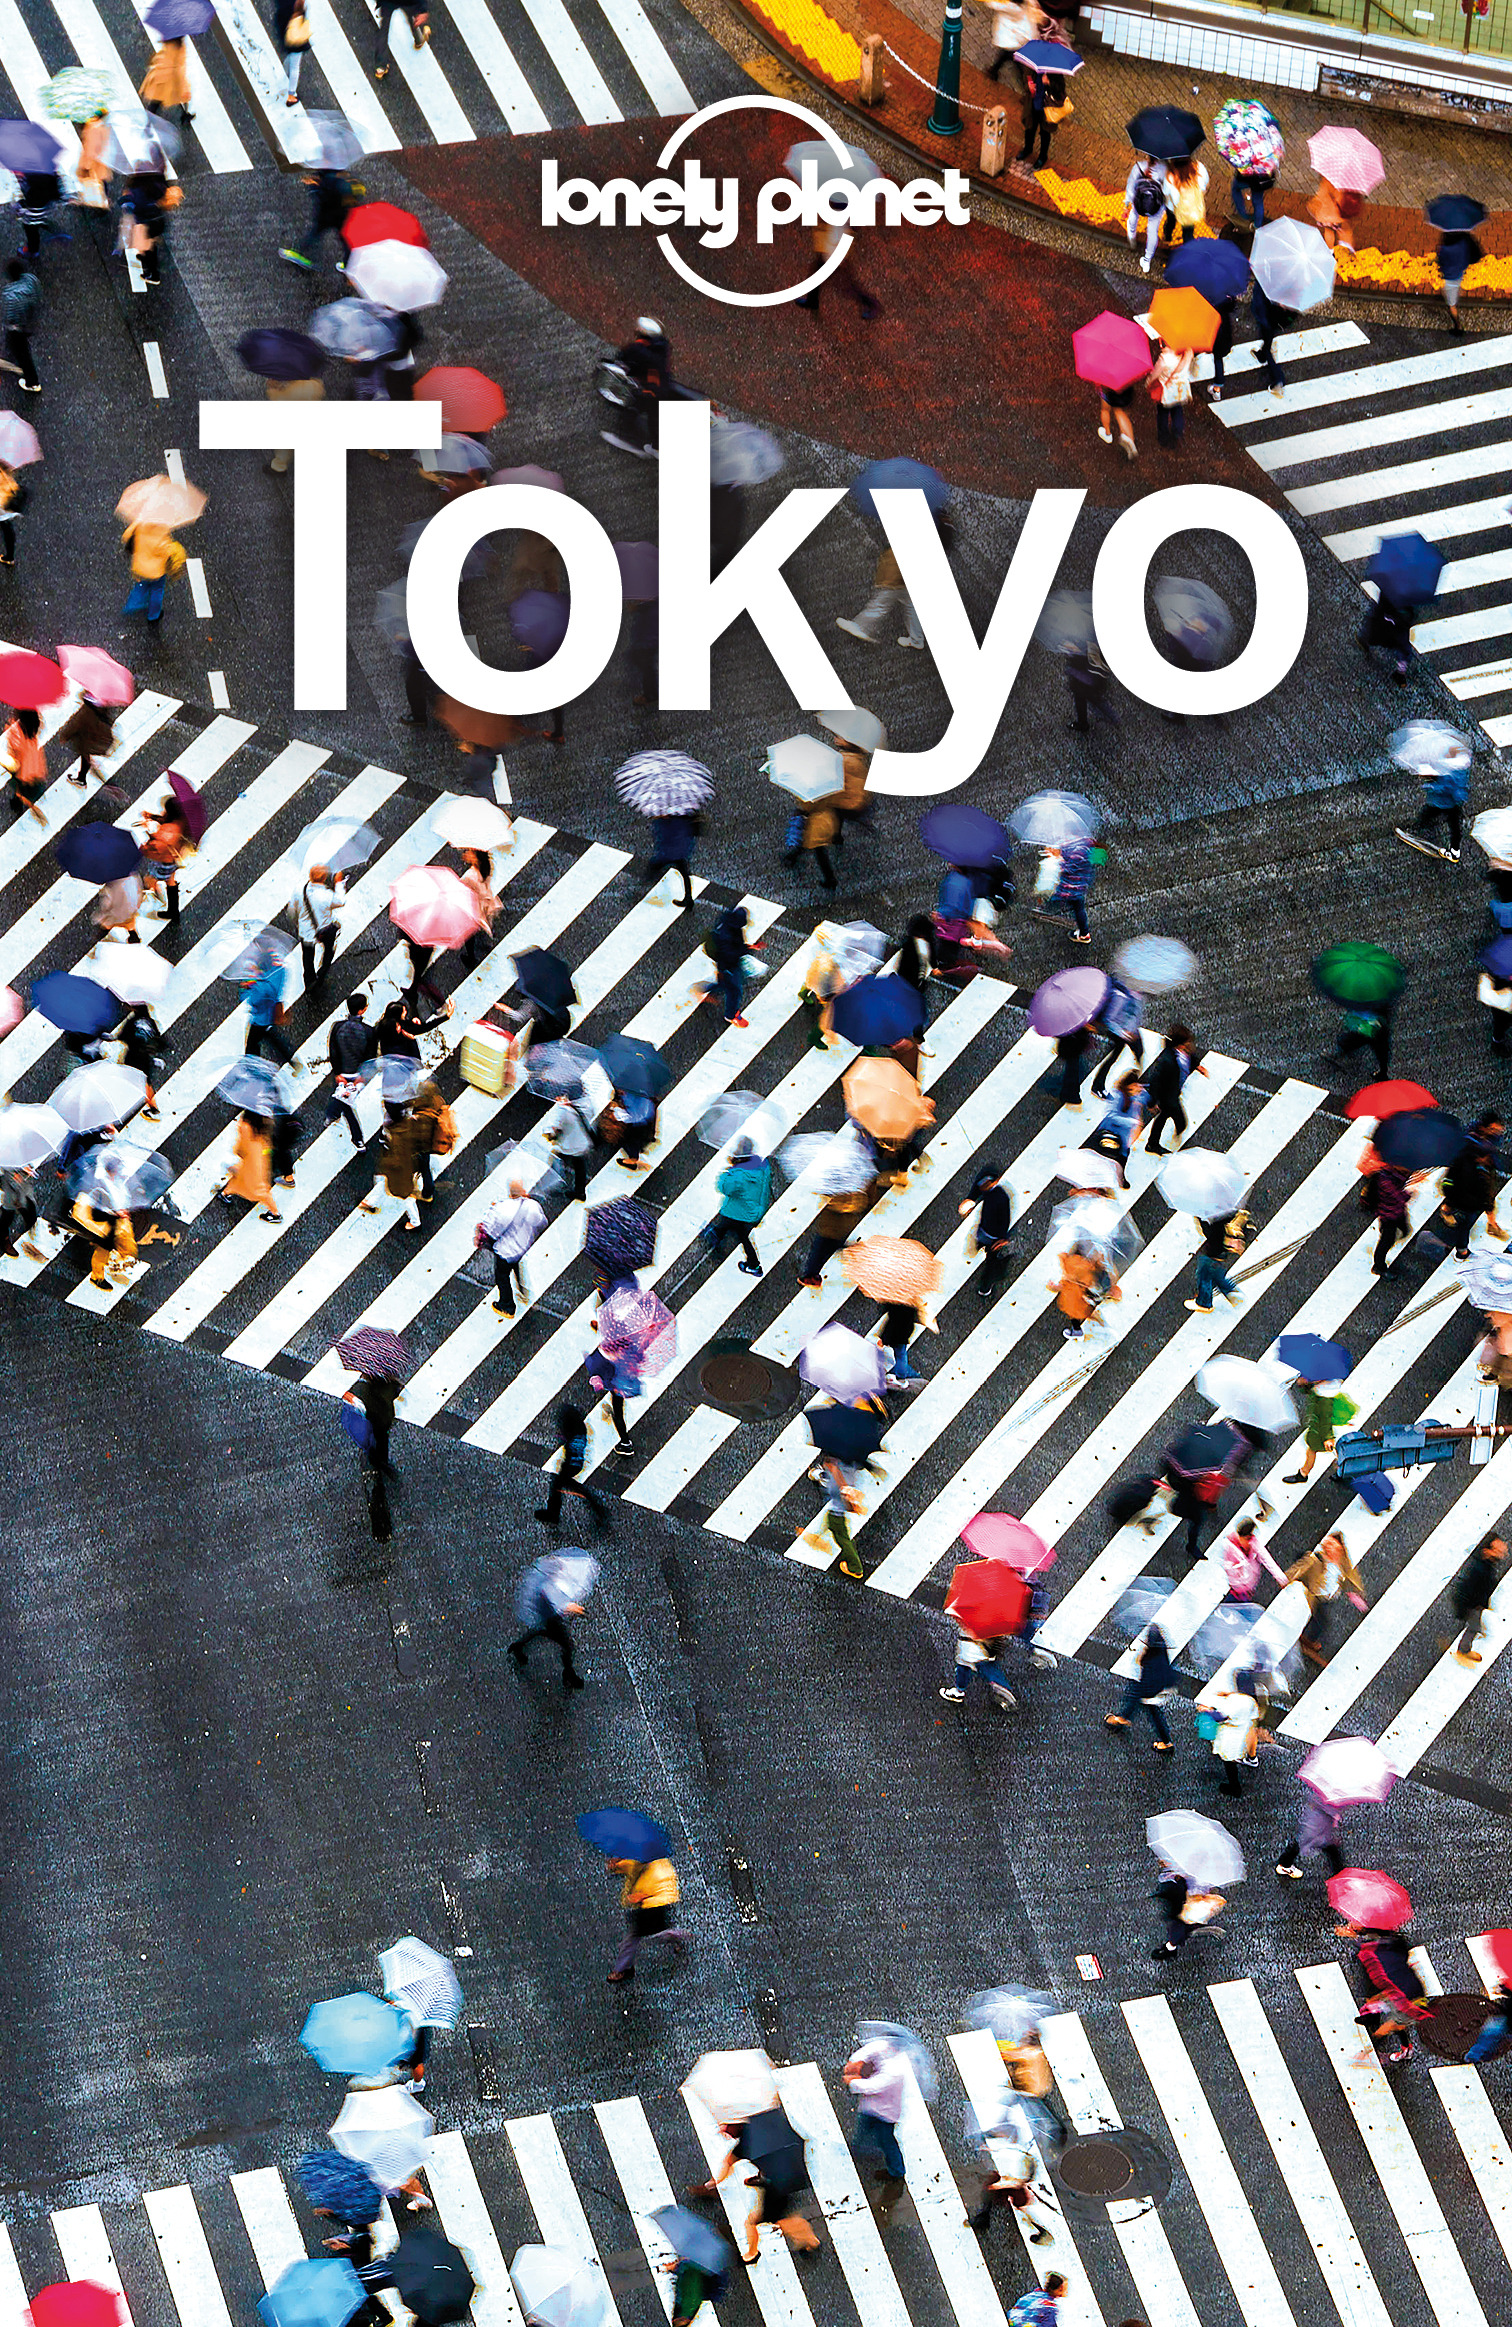 Planet, Lonely - Lonely Planet Tokyo, ebook